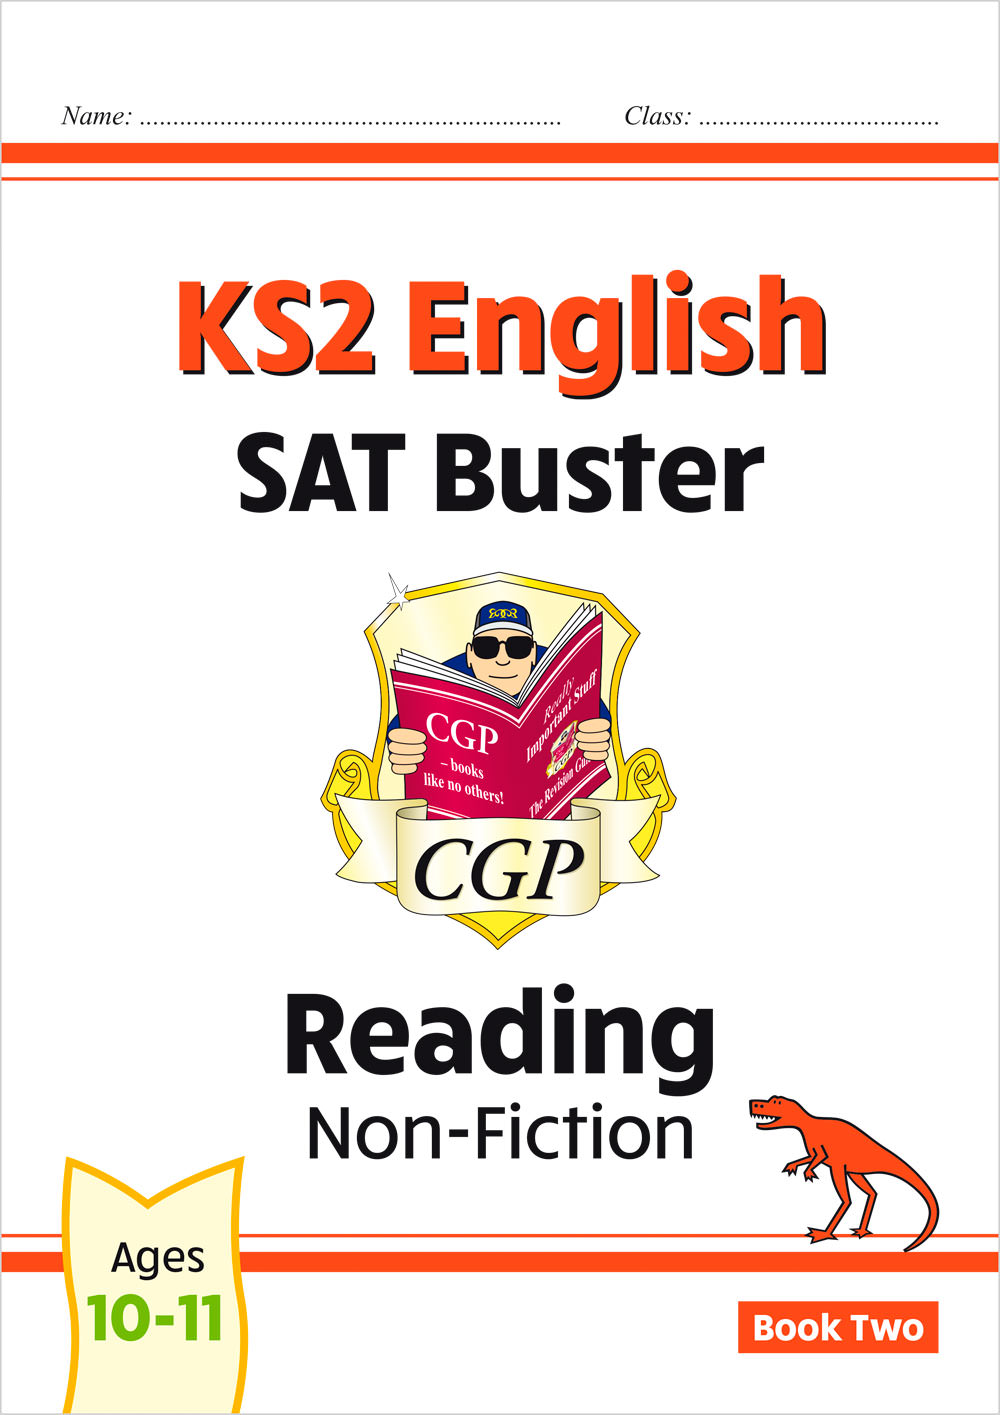 E6FRN222 - New KS2 English Reading SAT Buster: Non-Fiction - Book 2